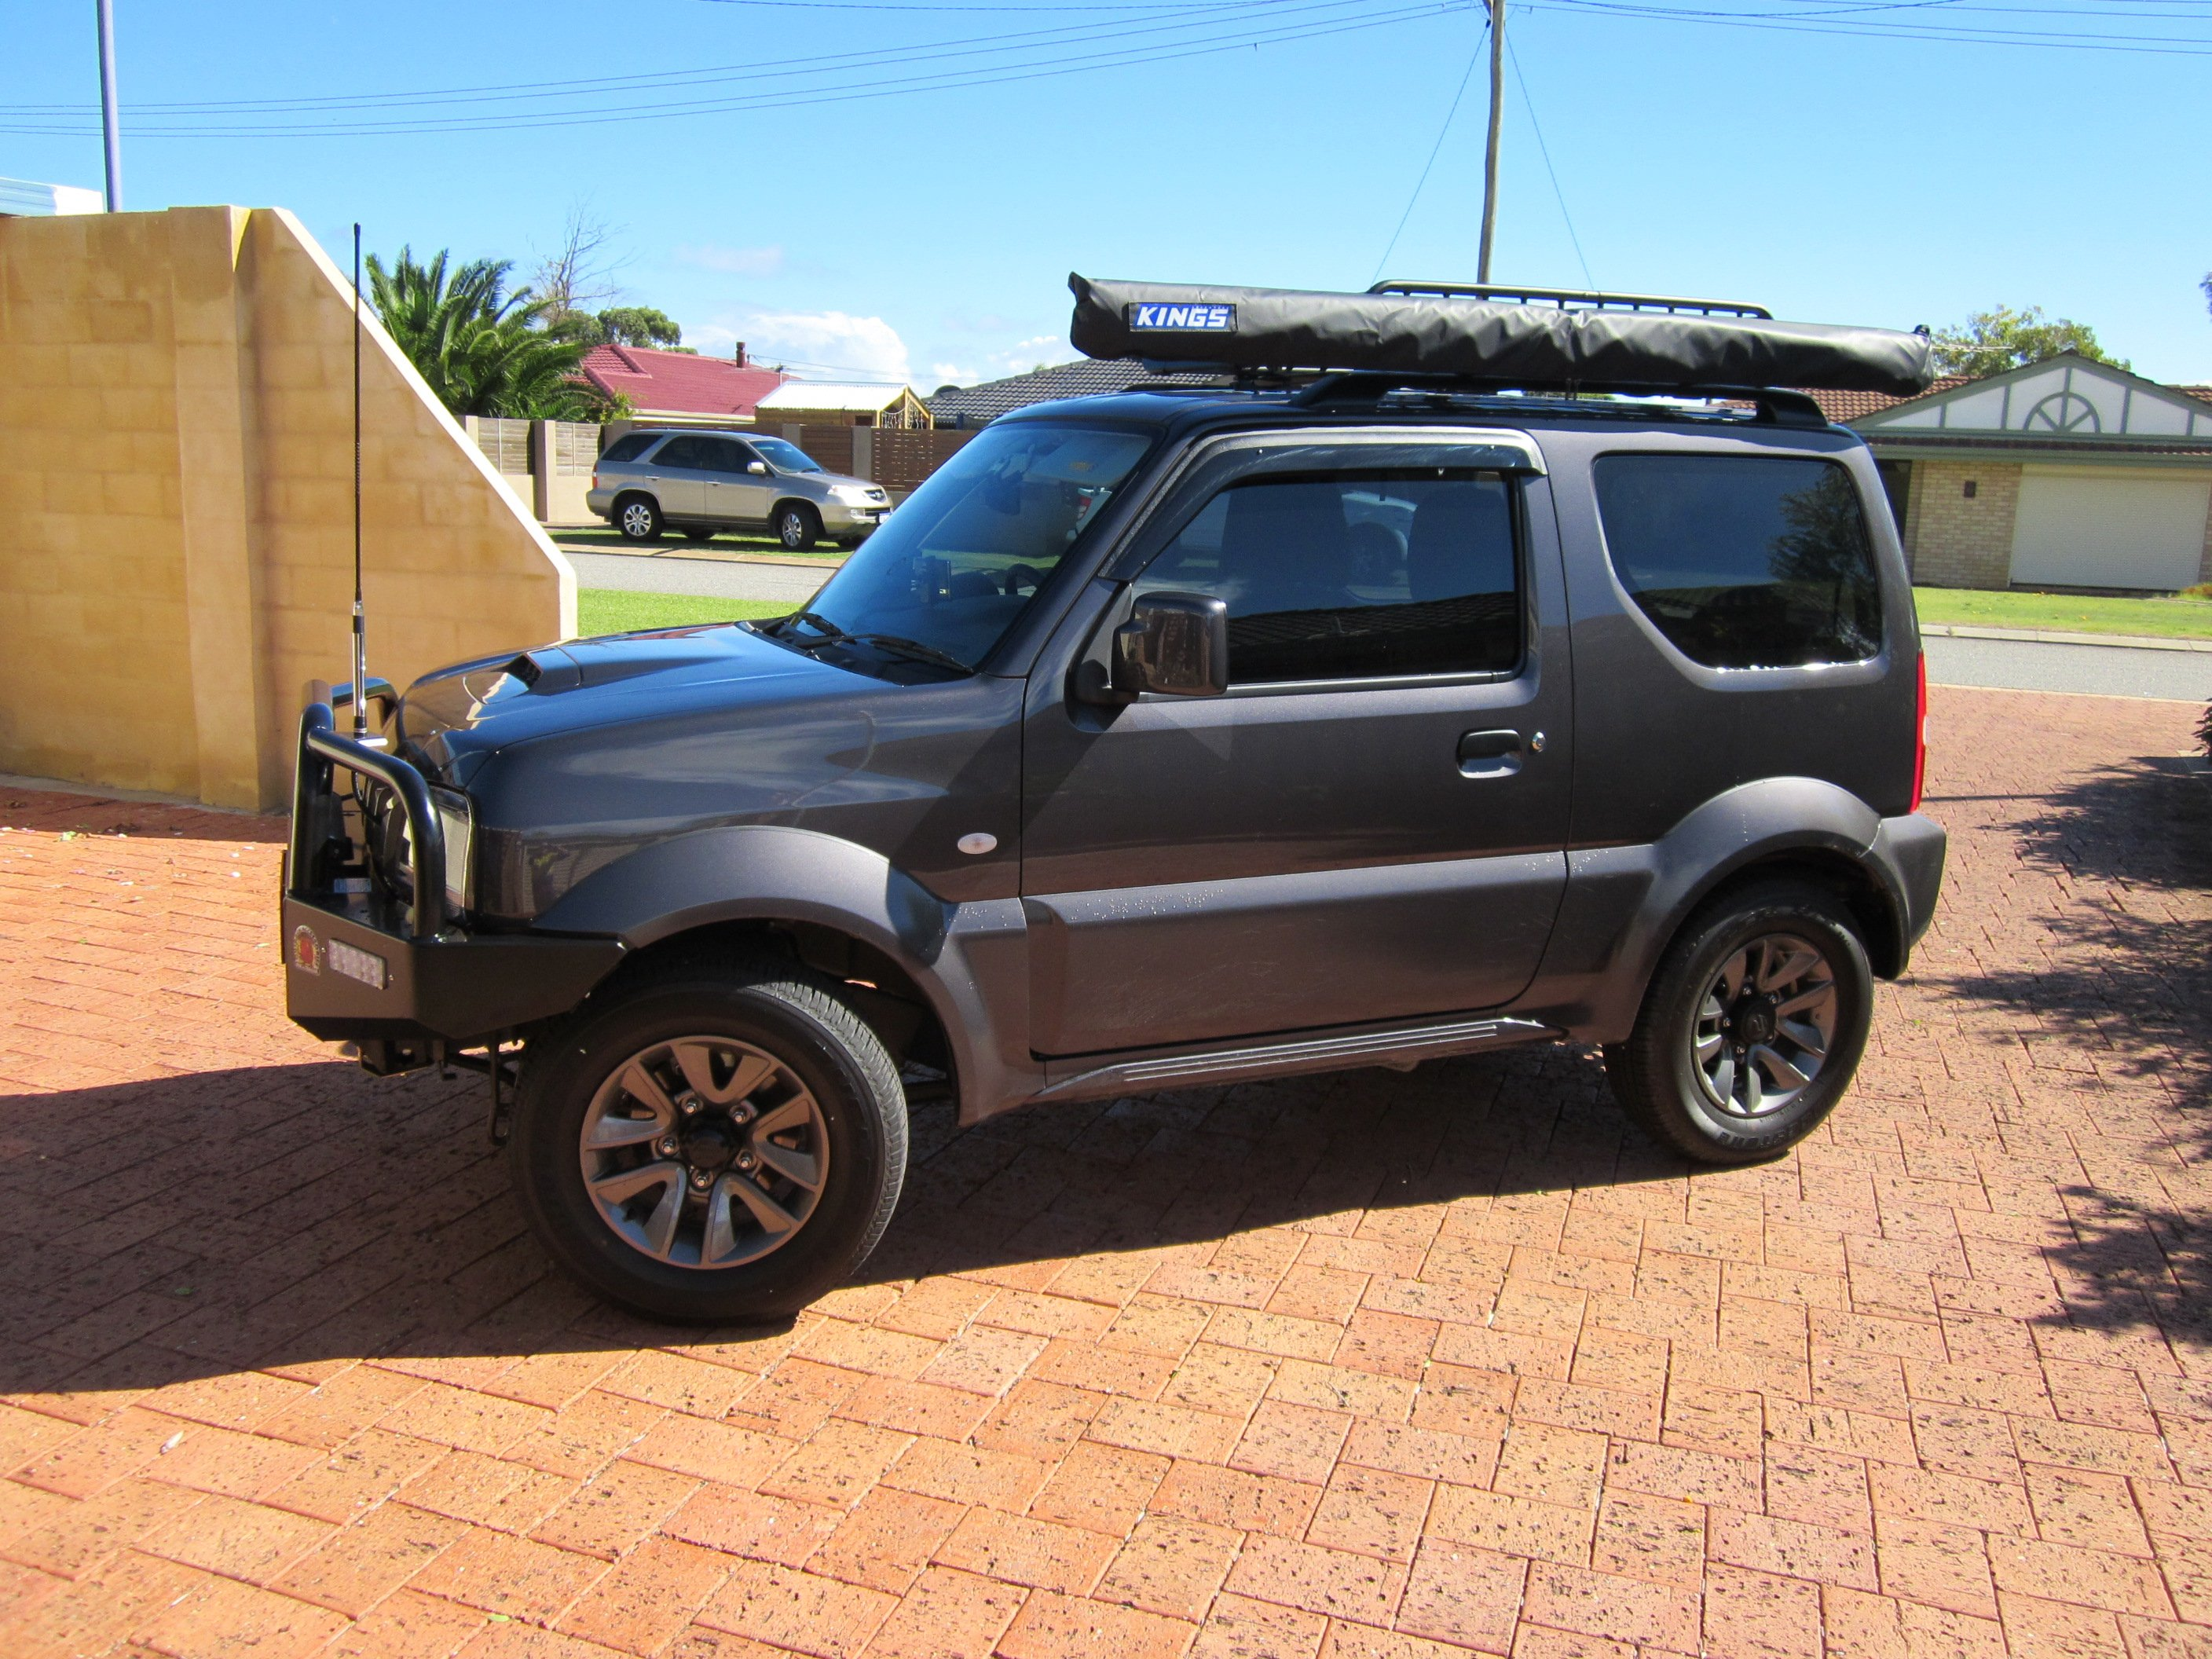 new suzuki jimny sierra to remain a hardcore ladder frame. Black Bedroom Furniture Sets. Home Design Ideas